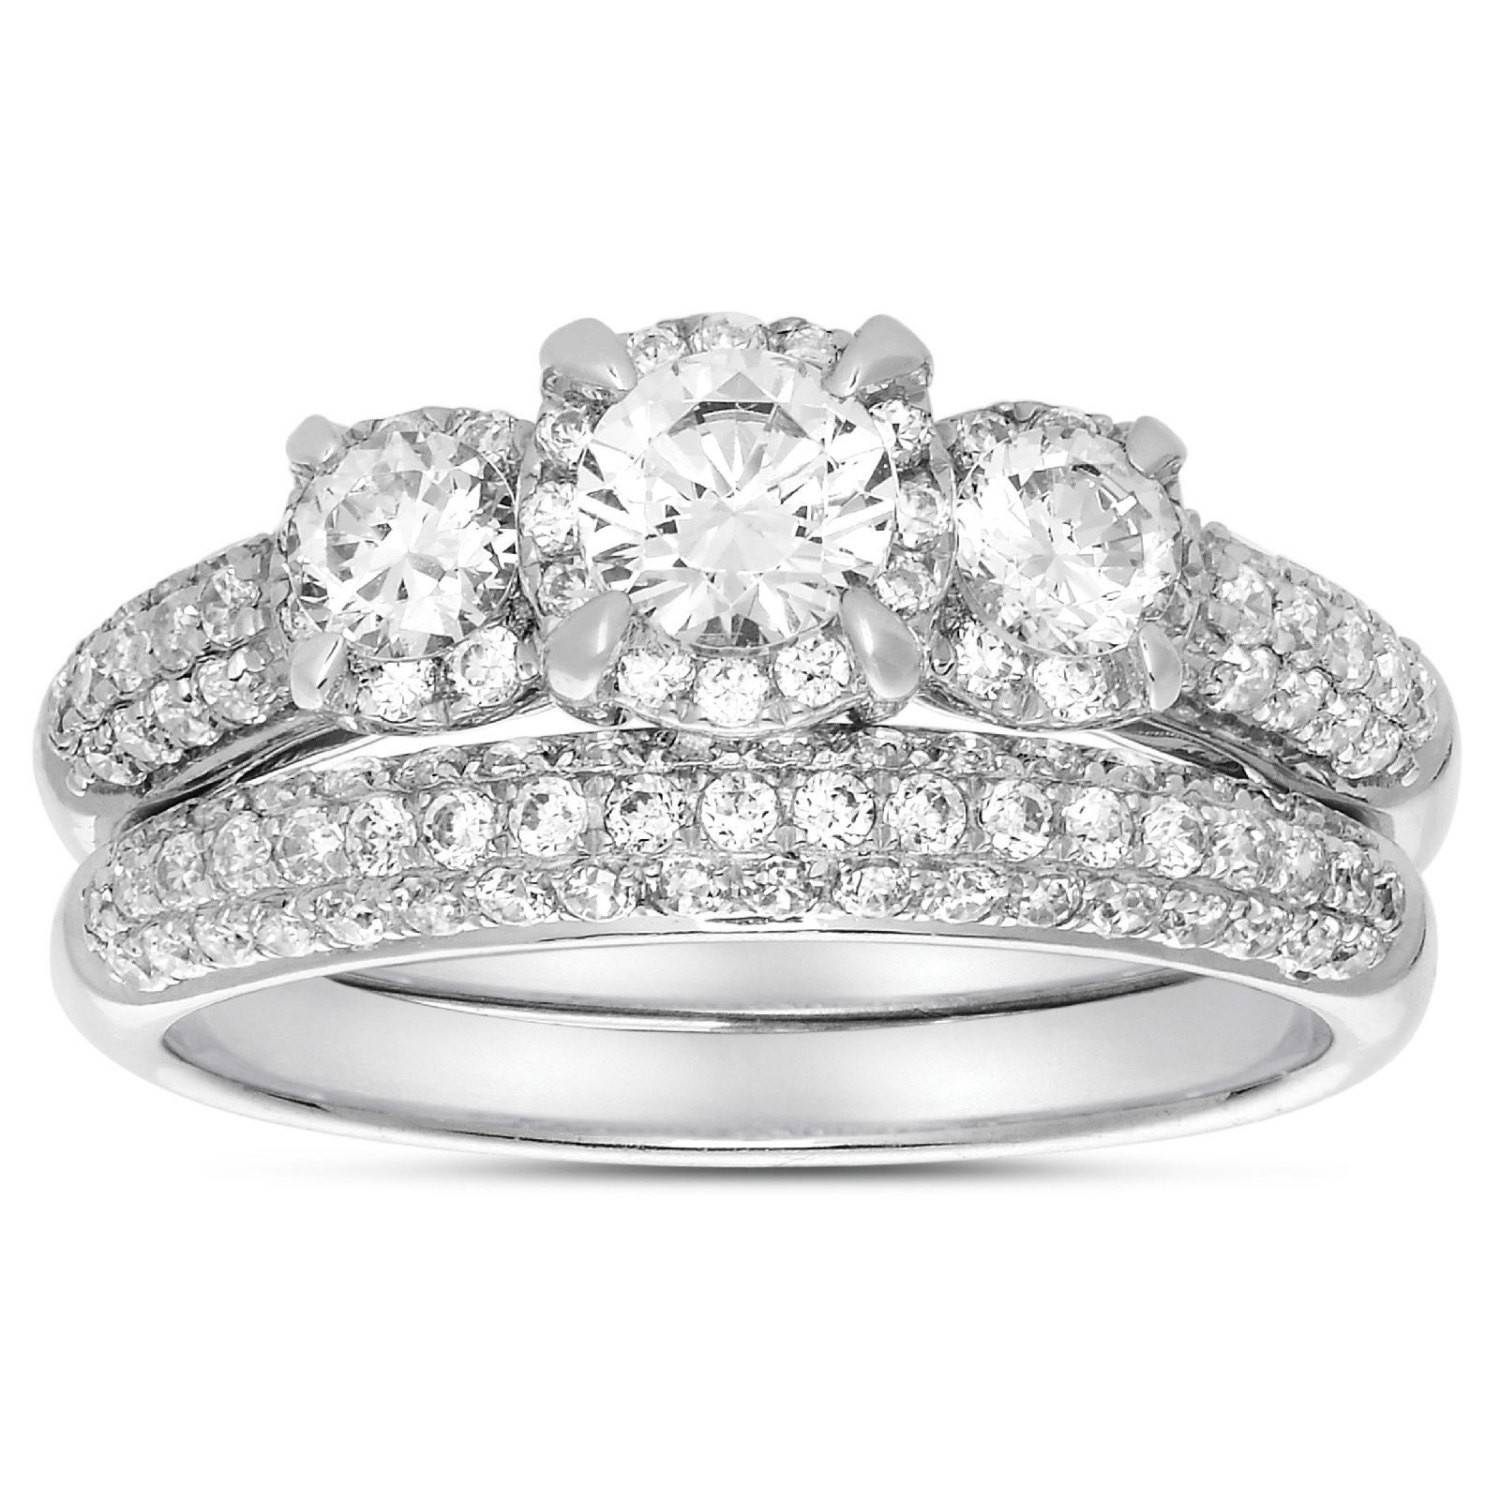 2 Carat Three Stone Trilogy Round Diamond Wedding Ring Set In For Engagement Ring Sets For Women (View 3 of 15)